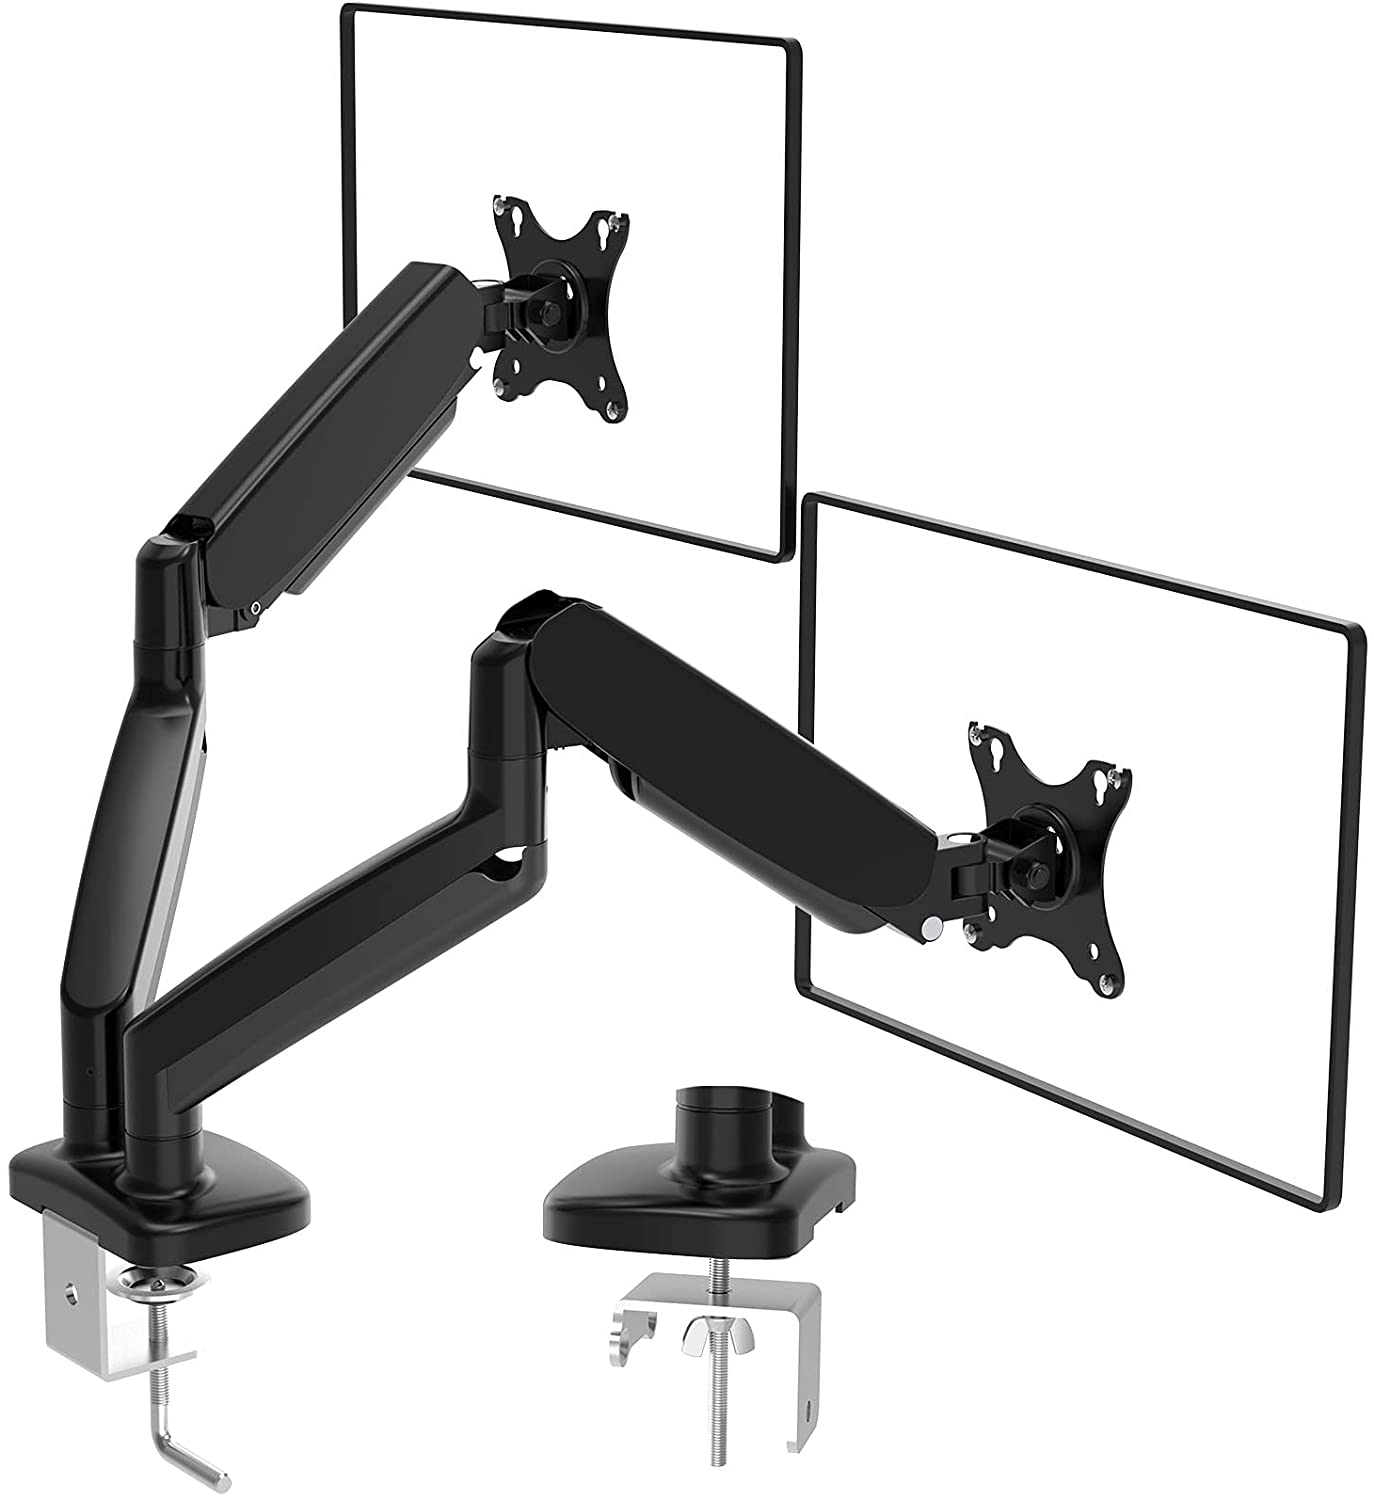 (EU EXCLUSIVE) PUTORSEN Dual Monitor Stand for 13 to 32 inch LCD LED Screens, Single Gas Spring Monitor Arm Desktop Clamp Mount Tilt Swivel VESA 75/100mm Weight 2kg to 8kg,PTMA-092